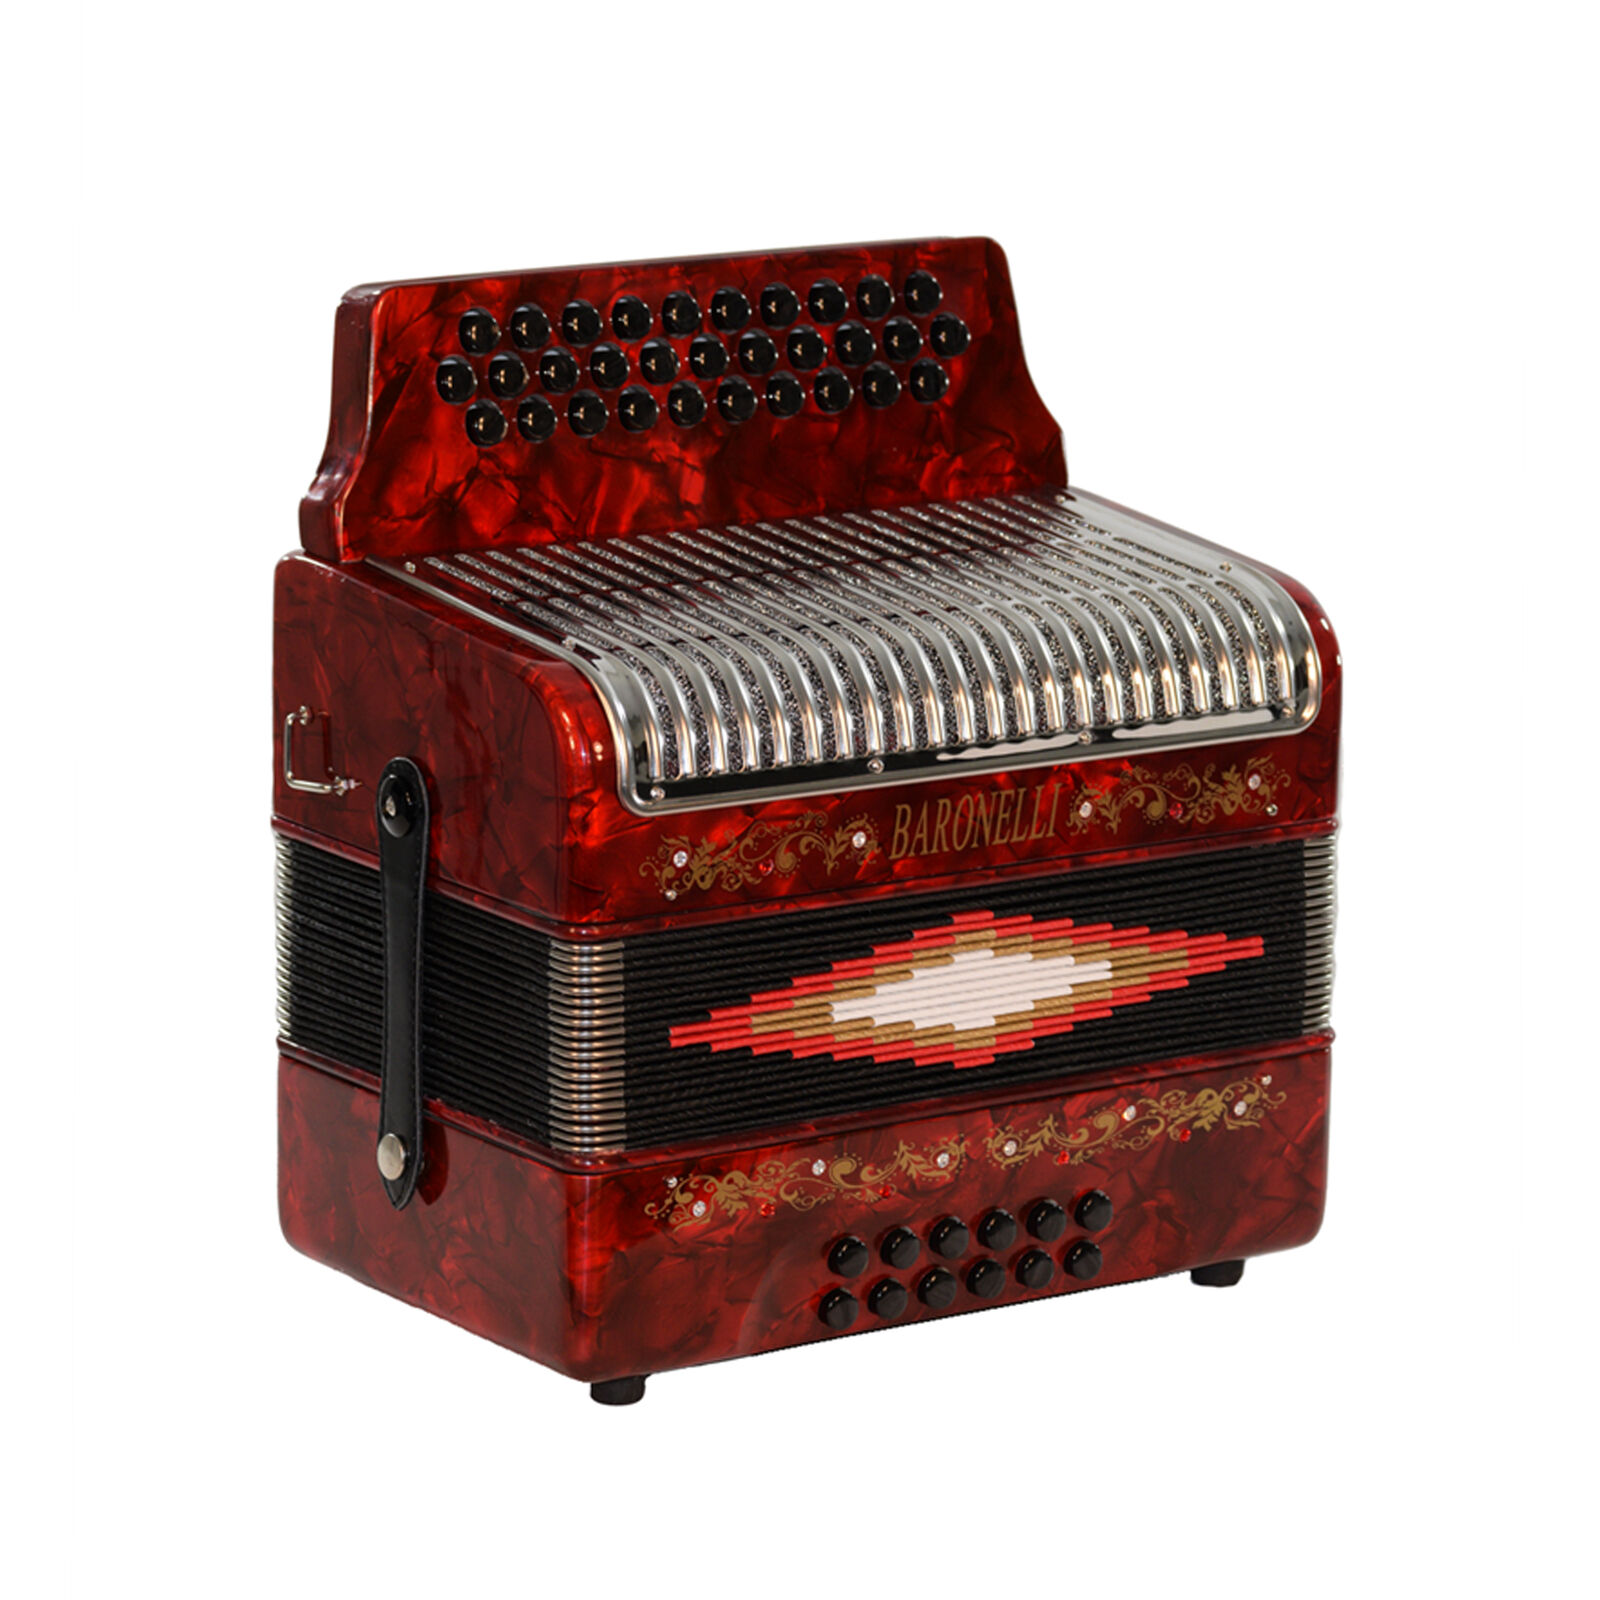 Baronelli 31 Button 12 Bass Accordion, GCF, Stainless Steel Grill, rot